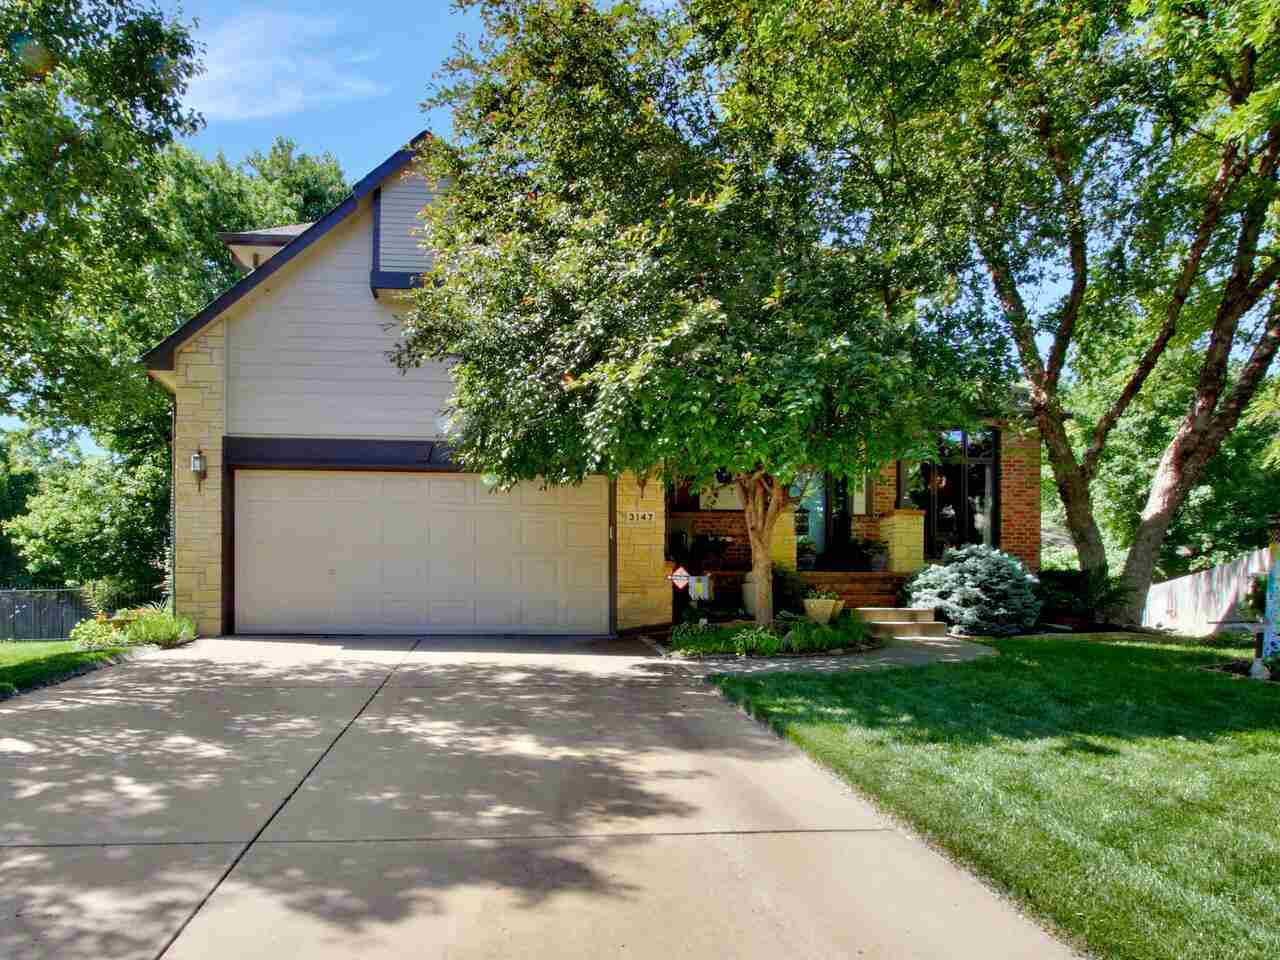 BEAUTIFUL cul de sac location with phenomenal landscape curated by a master gardener * Open floor pl